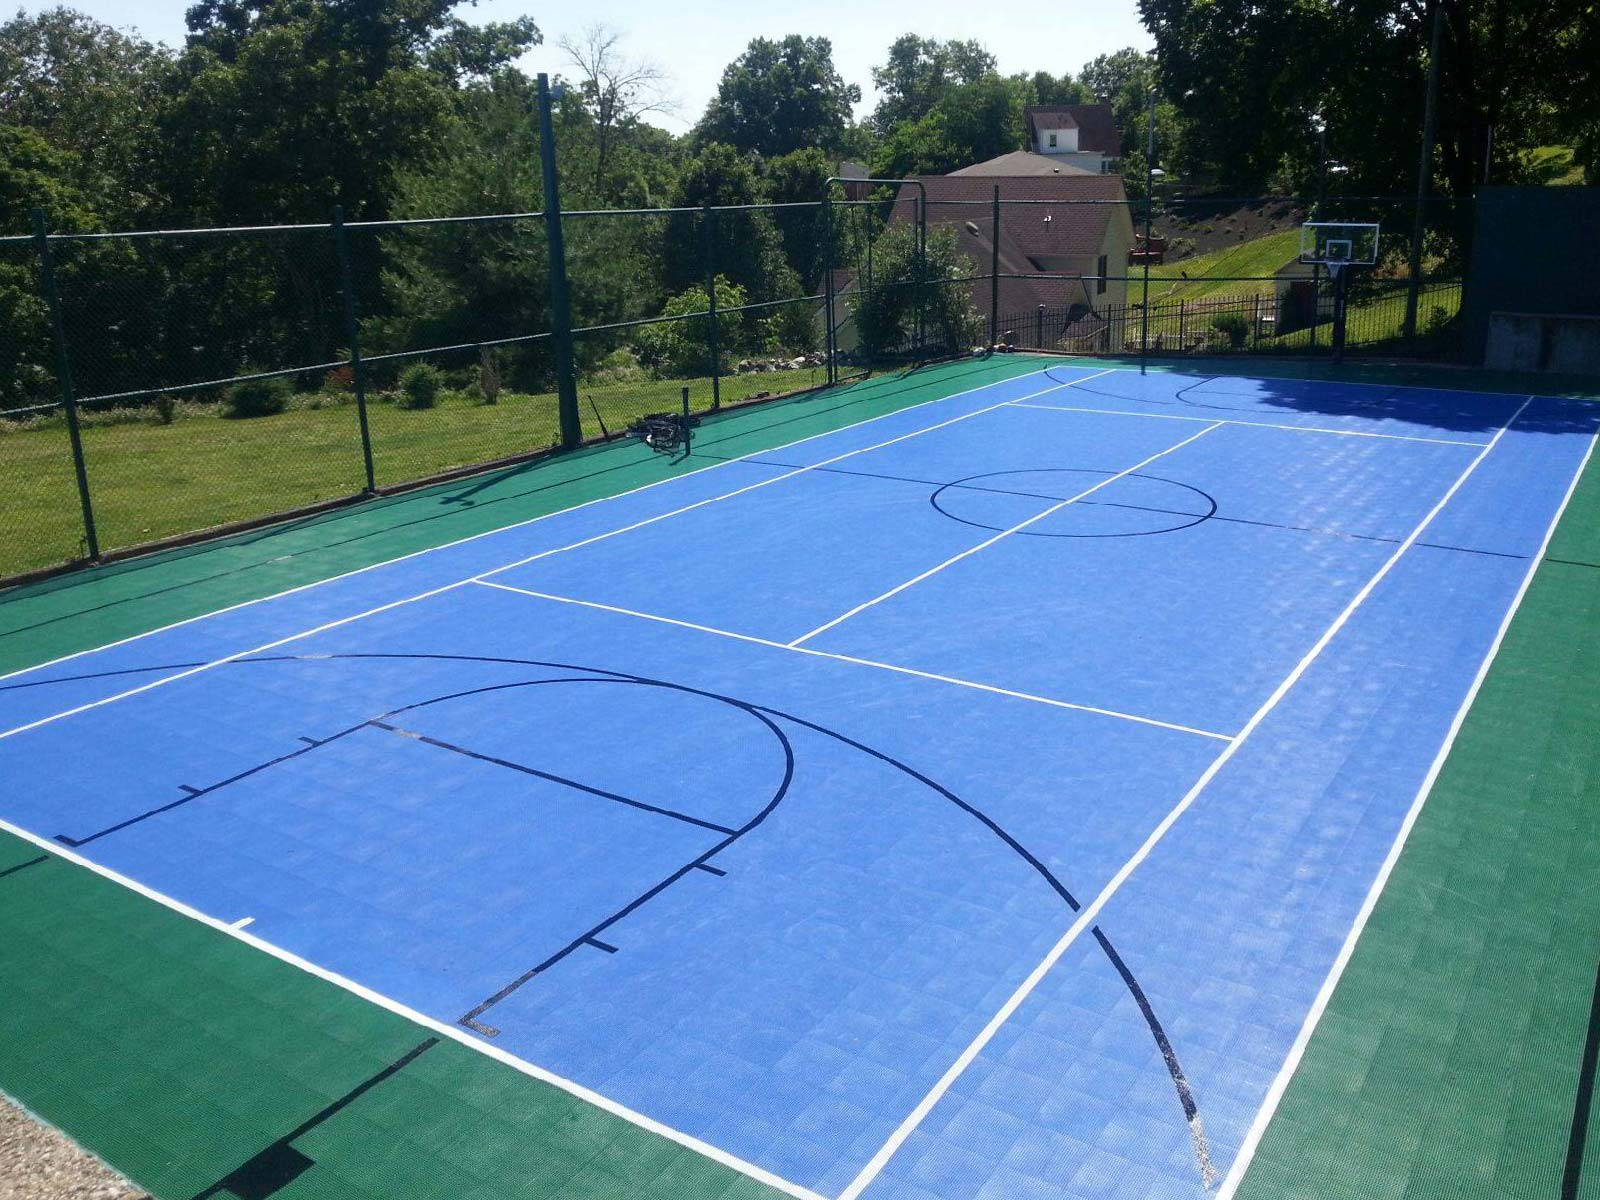 Evergreen and bright blue full multi-court